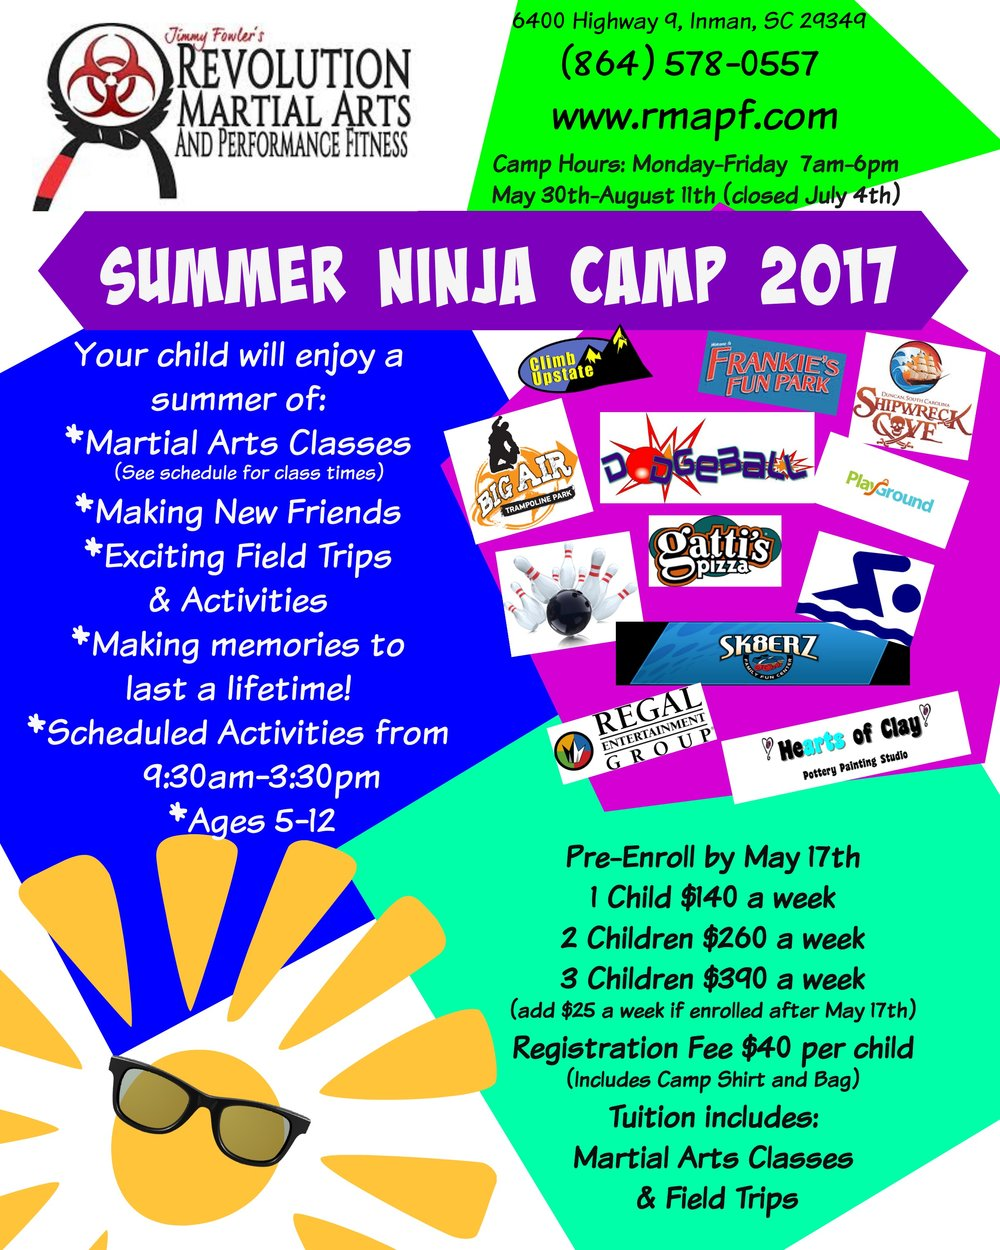 Summer Camp Flyer logos.jpg